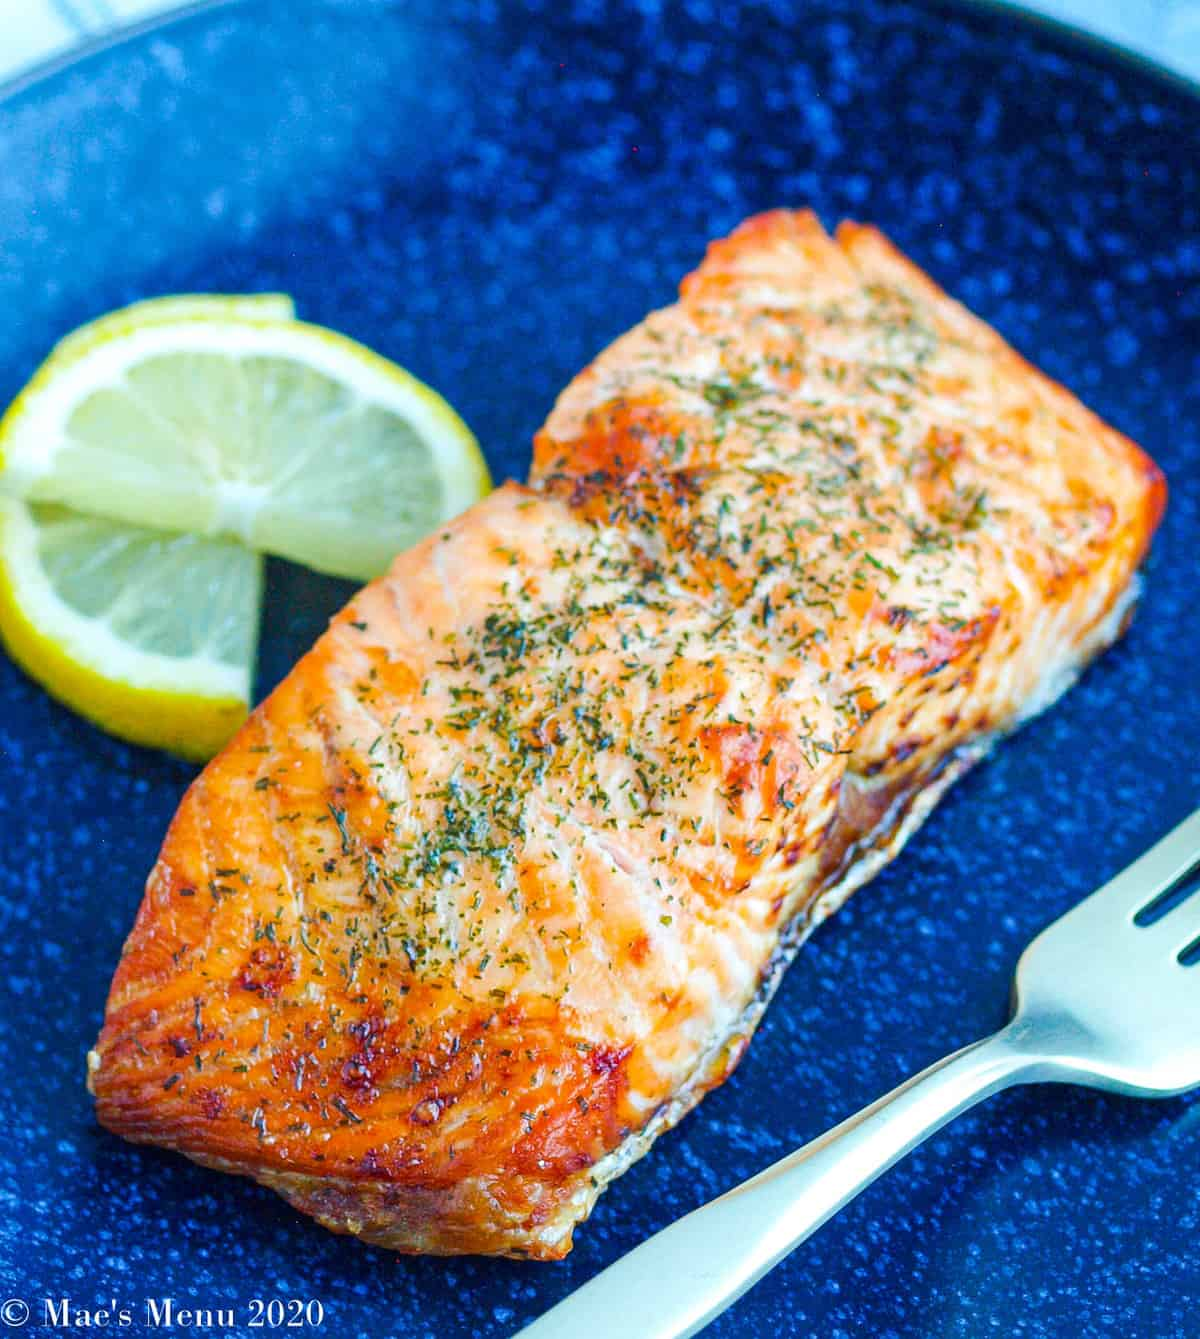 A piece of air fryer salmon on a dark blue plate next to slices of lemon